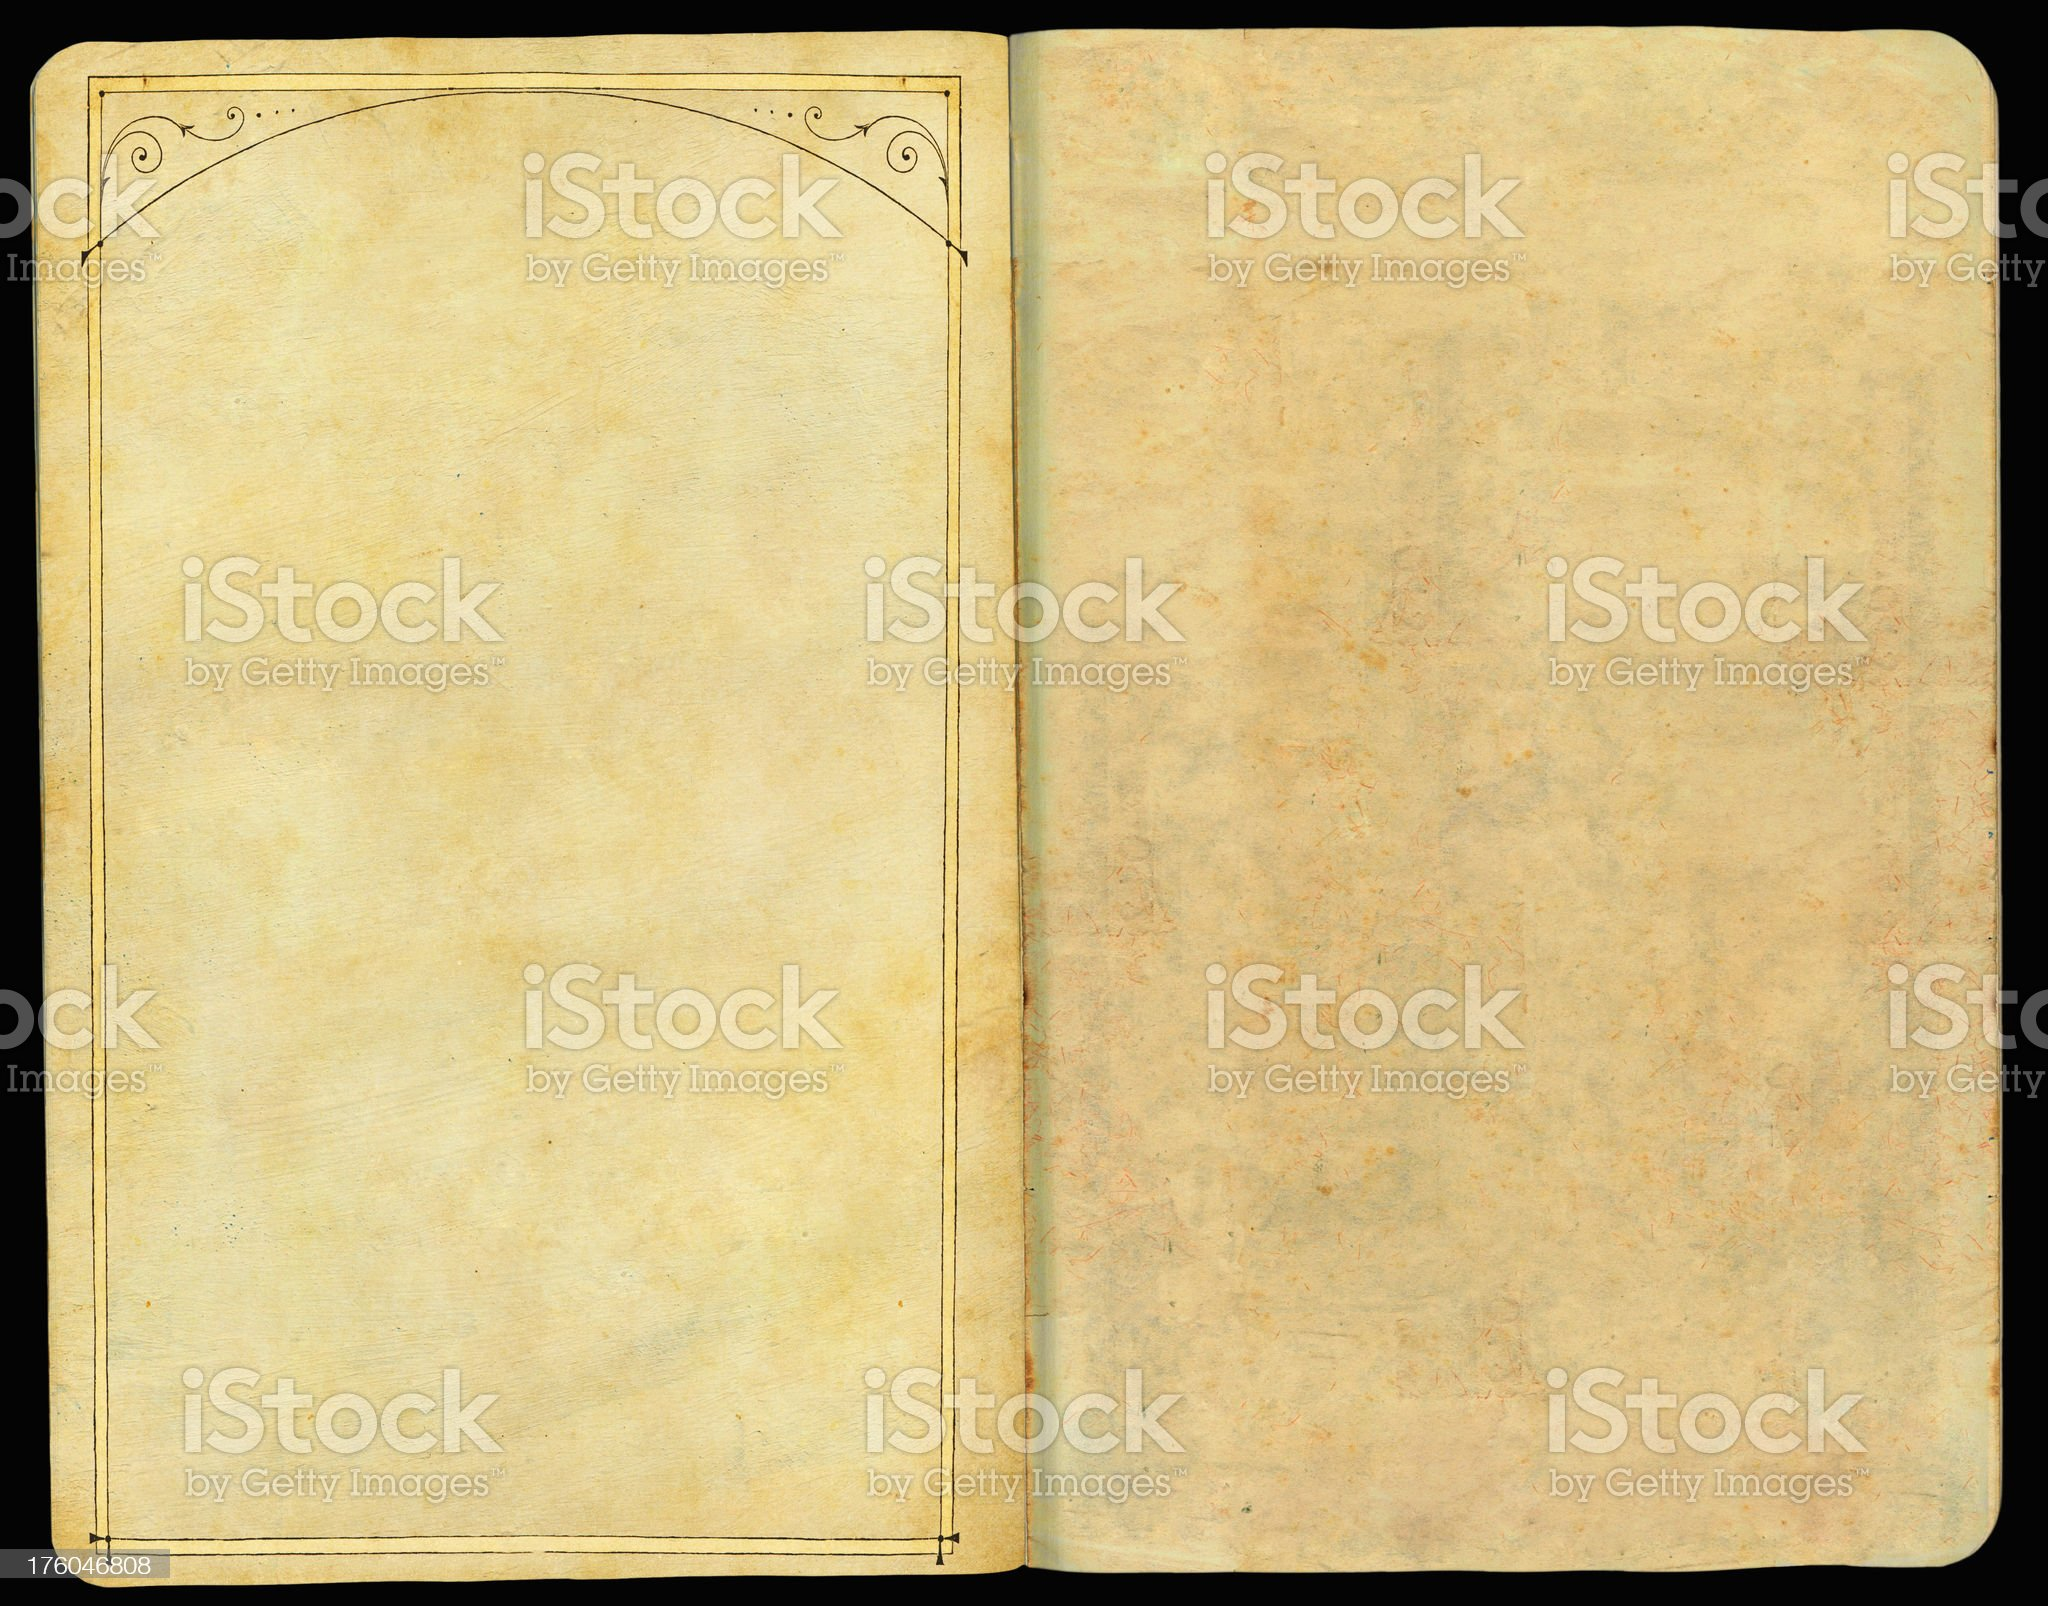 Vintage Frame Photo Album royalty-free stock photo